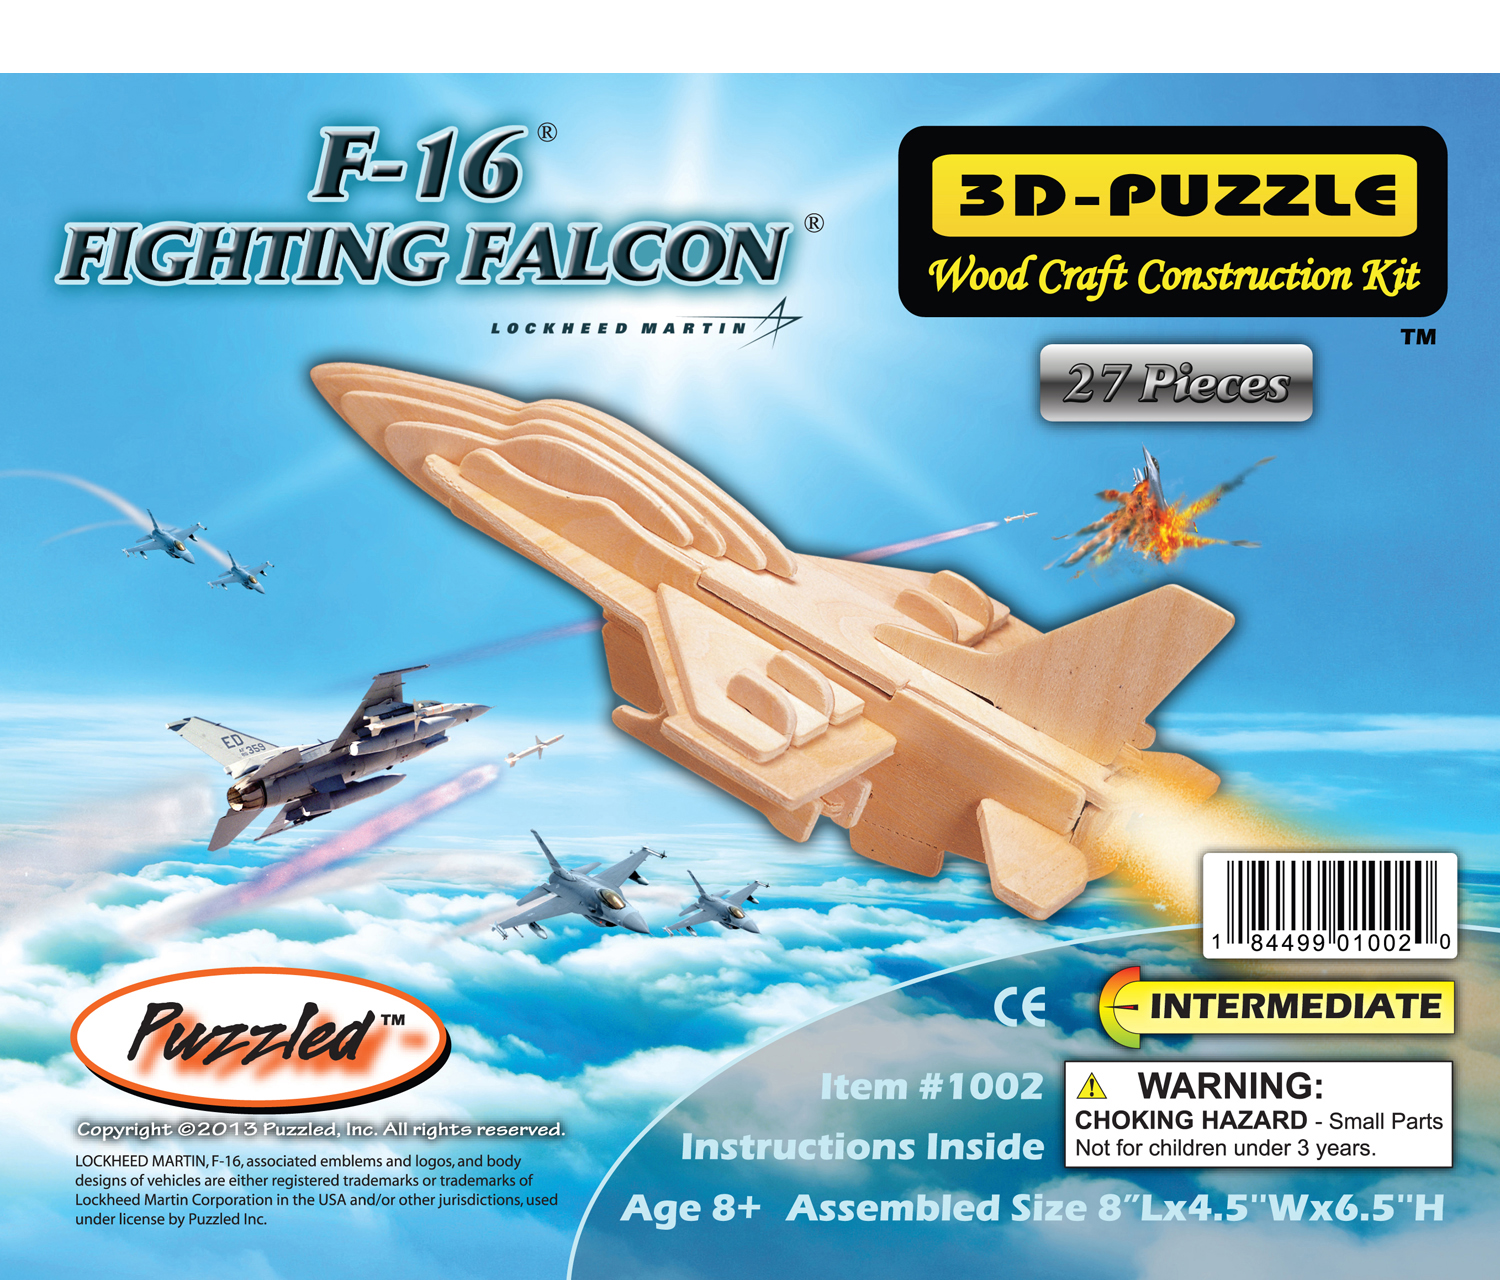 Puzzled 3D Puzzles F-16 Fighting Falcon